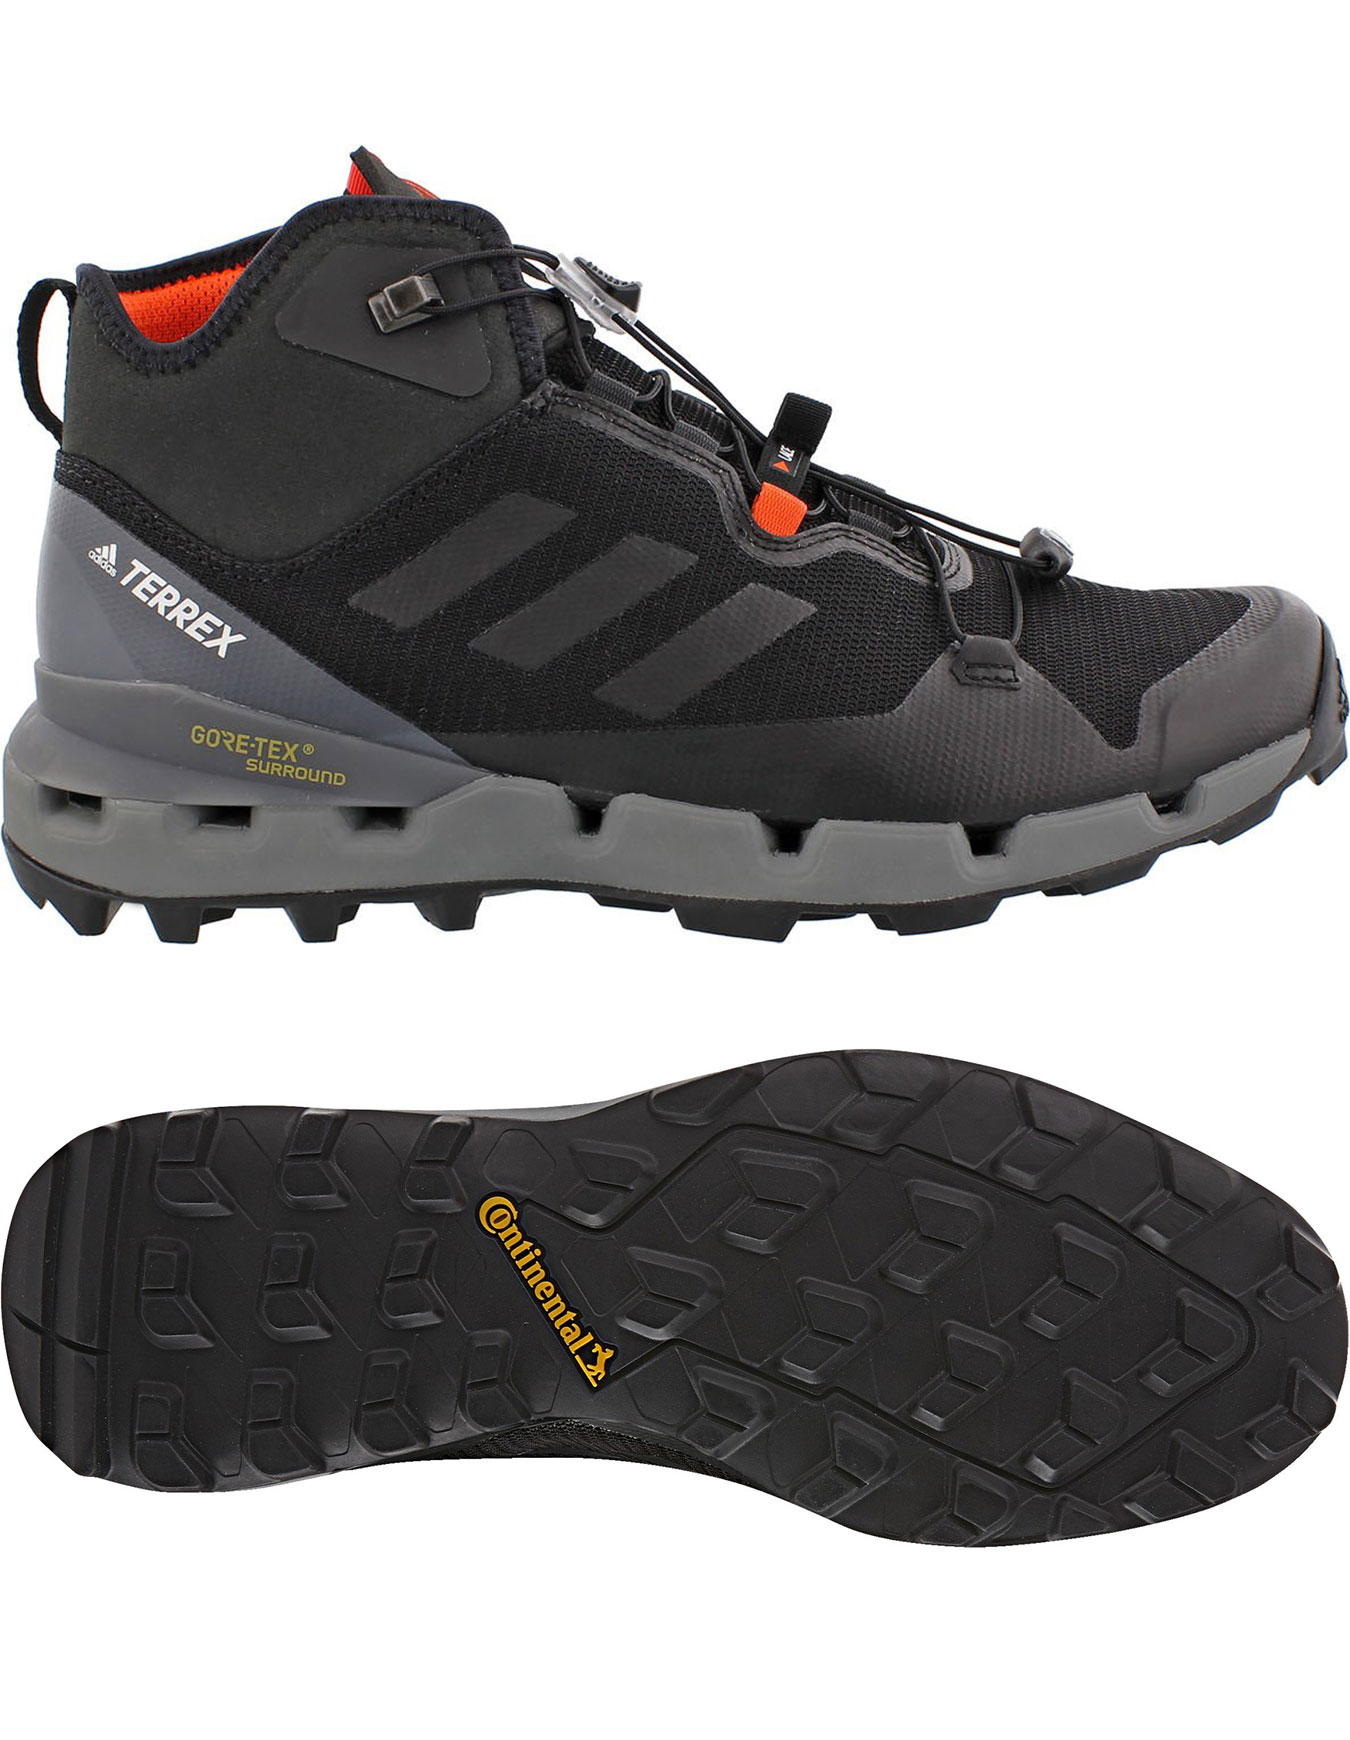 new arrival 57e1a a0596 Adidas Noir Terrex Gtx Surround Fast Chaussures Mid xXxPgRS